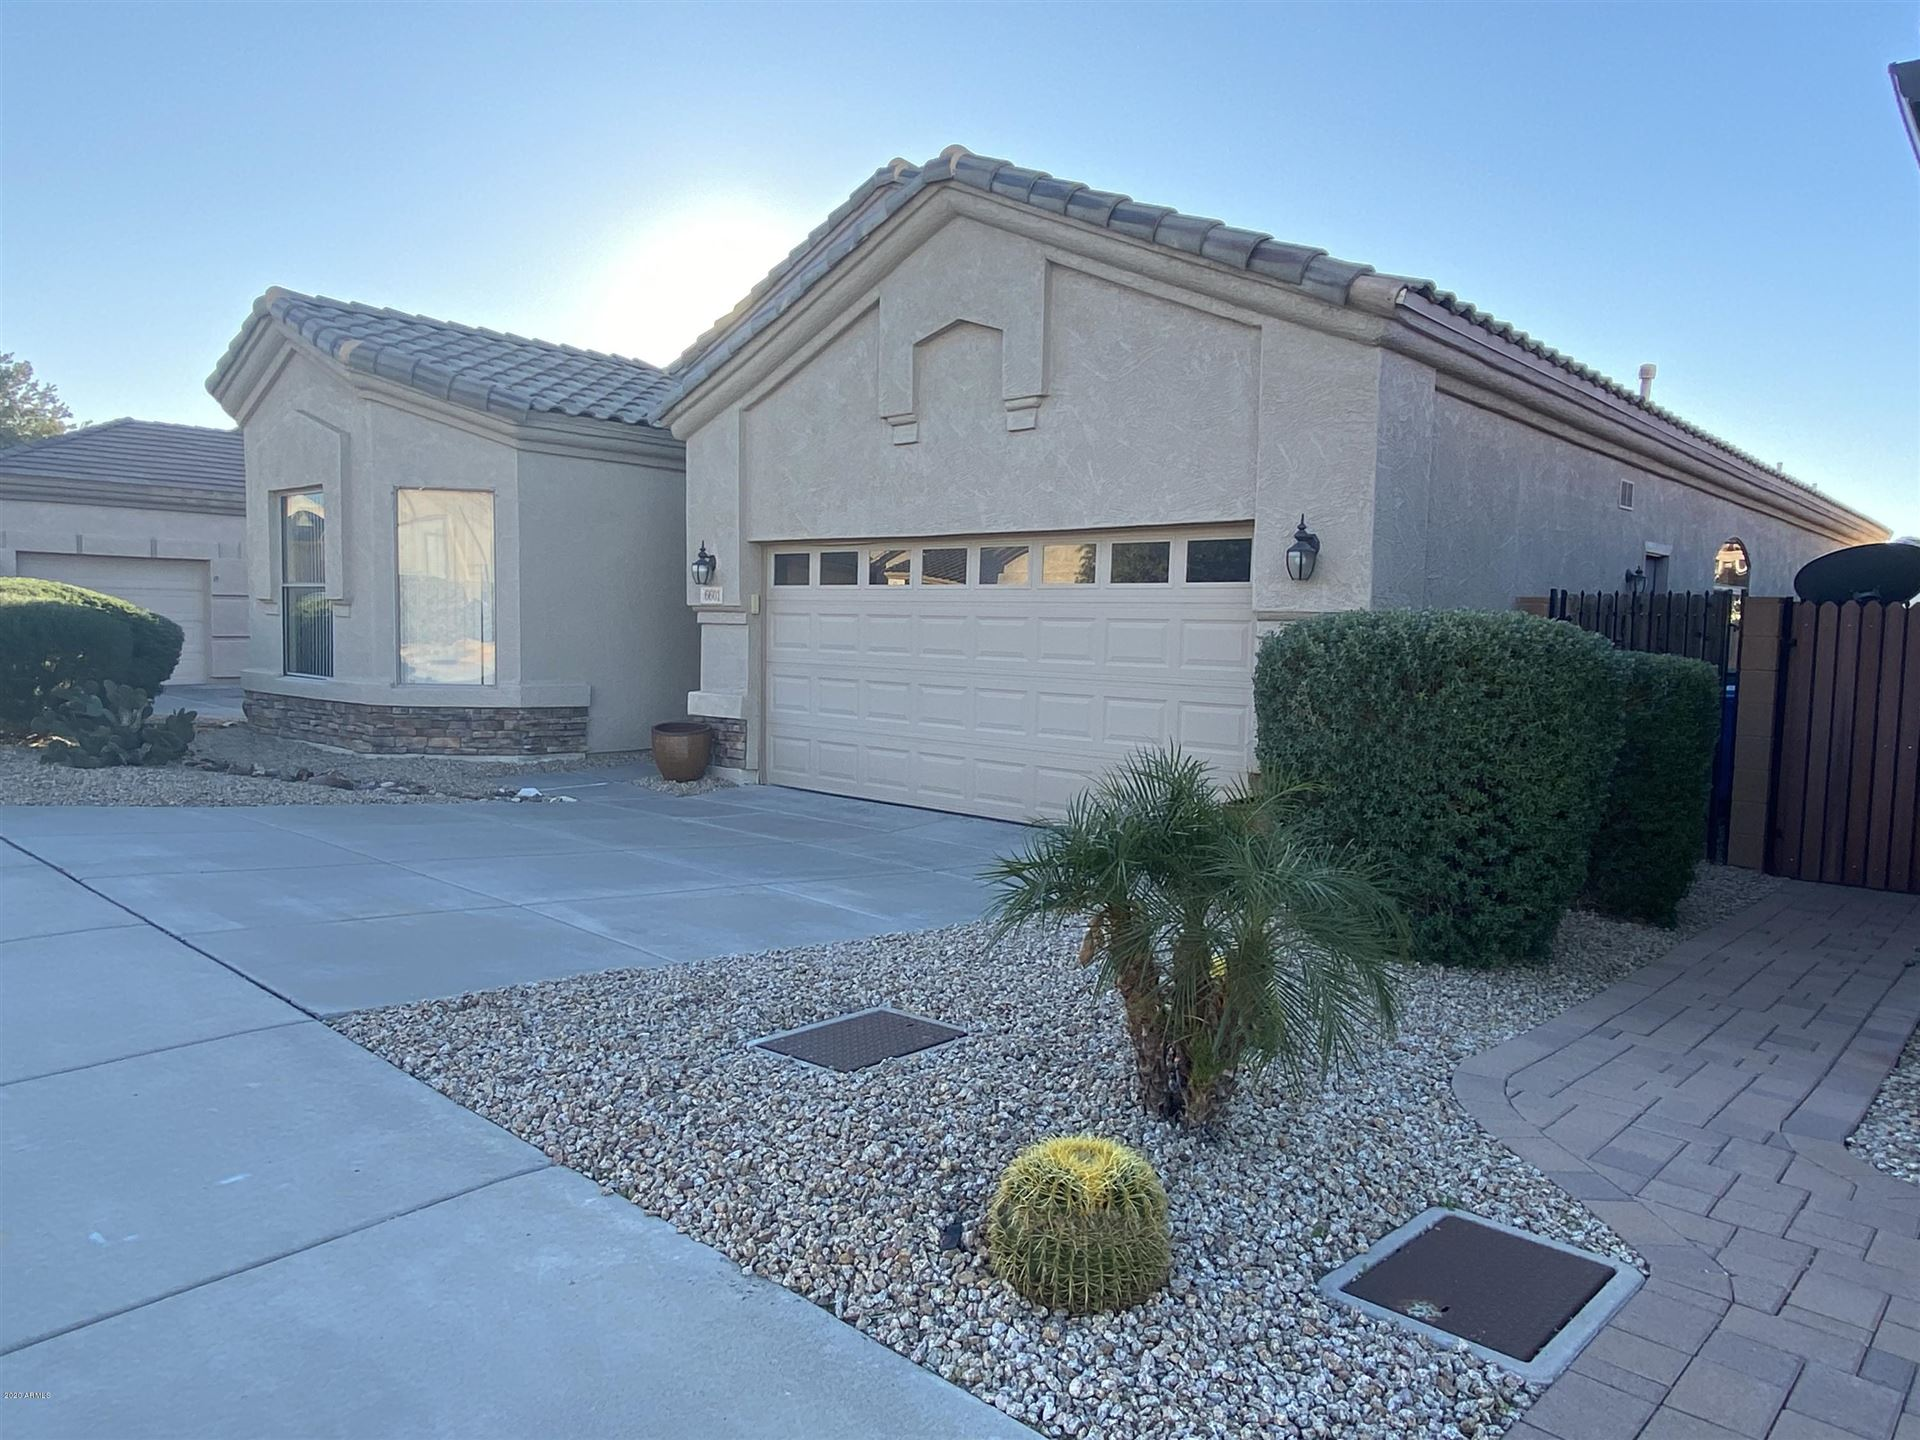 6601 W MOLLY Lane, Phoenix, AZ 85083 - MLS#: 6082107